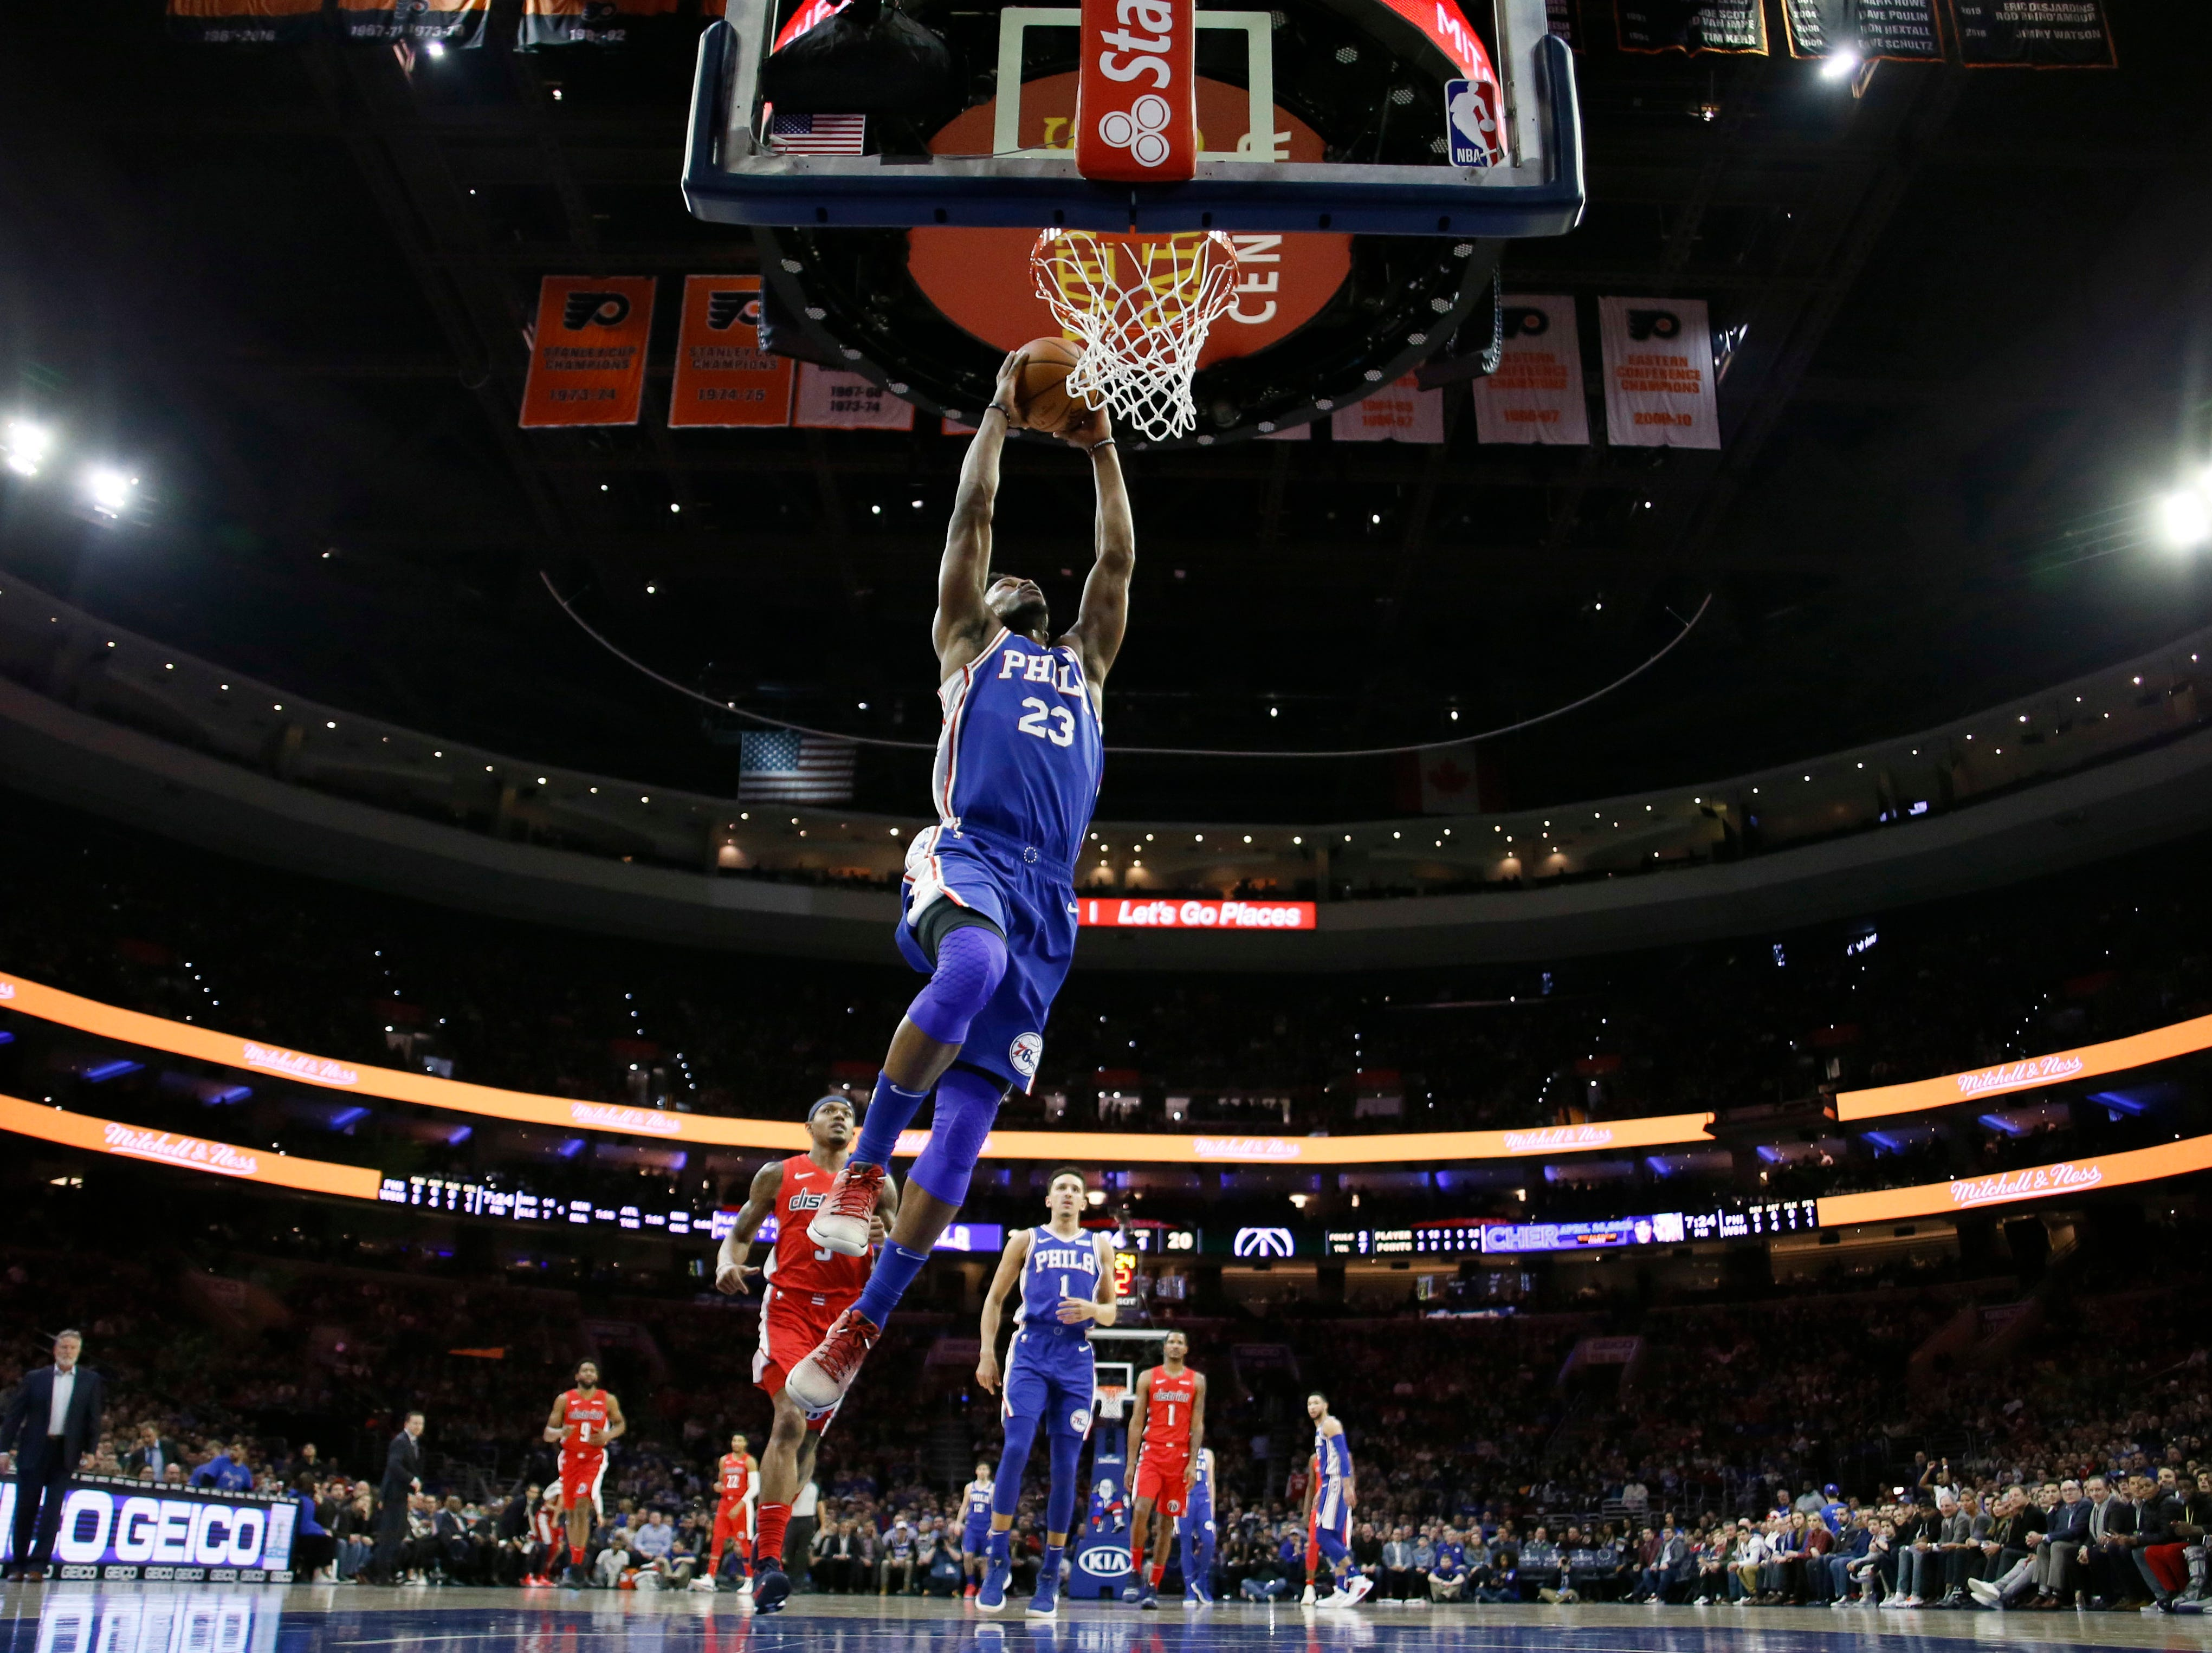 Philadelphia 76ers' Jimmy Butler goes up for a dunk during the first half of an NBA basketball game against the Washington Wizards, Tuesday, Jan. 8, 2019, in Philadelphia. (AP Photo/Matt Slocum)